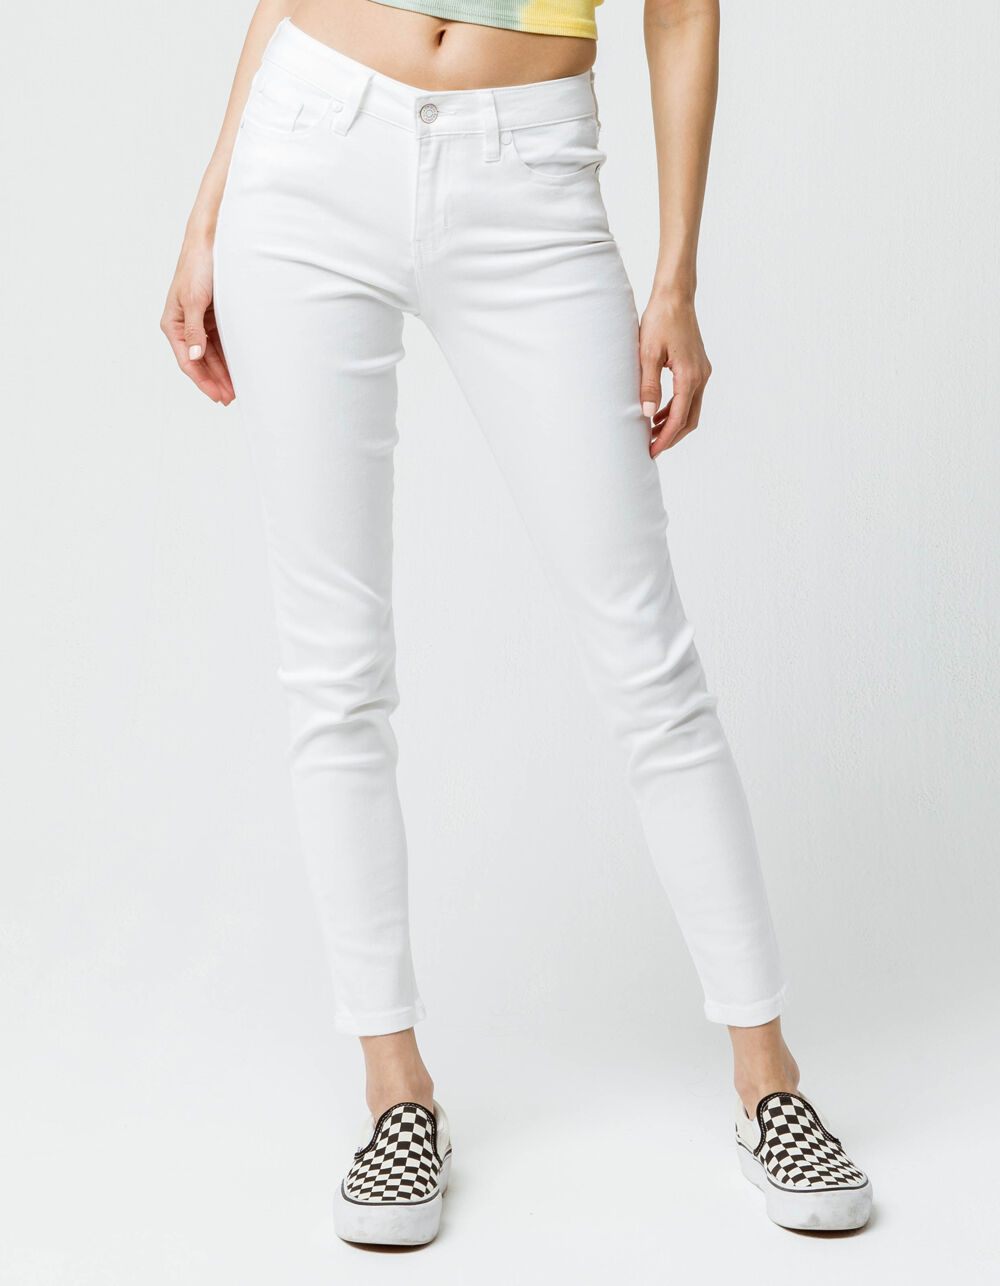 Image of CELEBRITY PINK MID RISE WHITE DENIM SKINNY JEANS